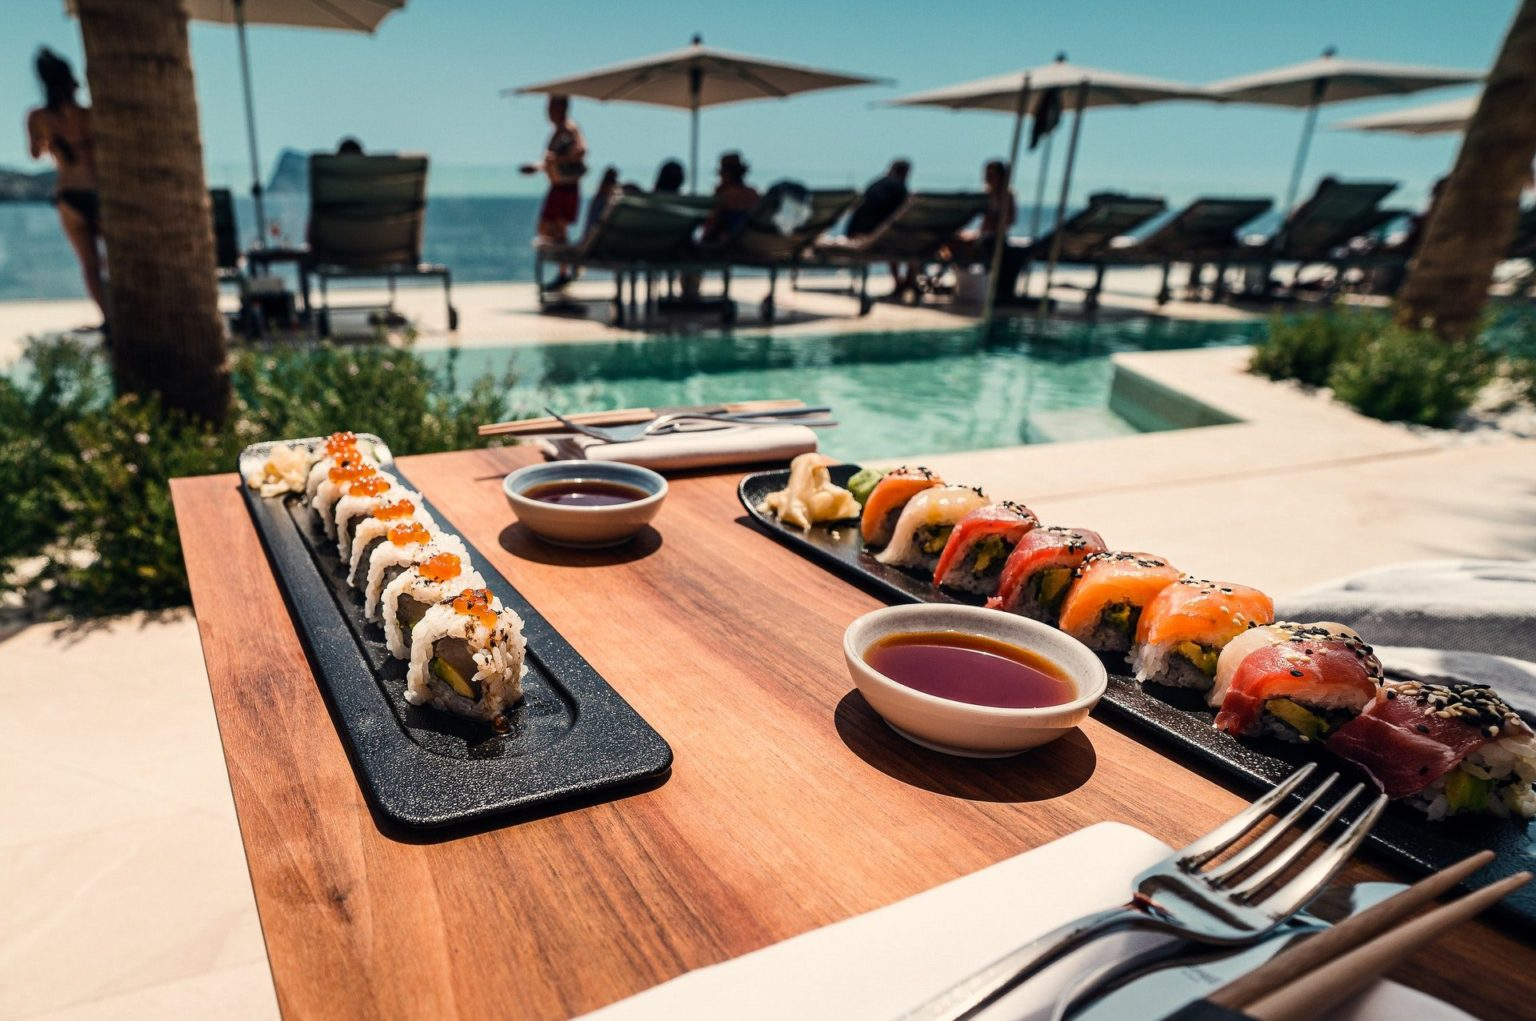 sushi-roll-on-tray-and-table-3475617